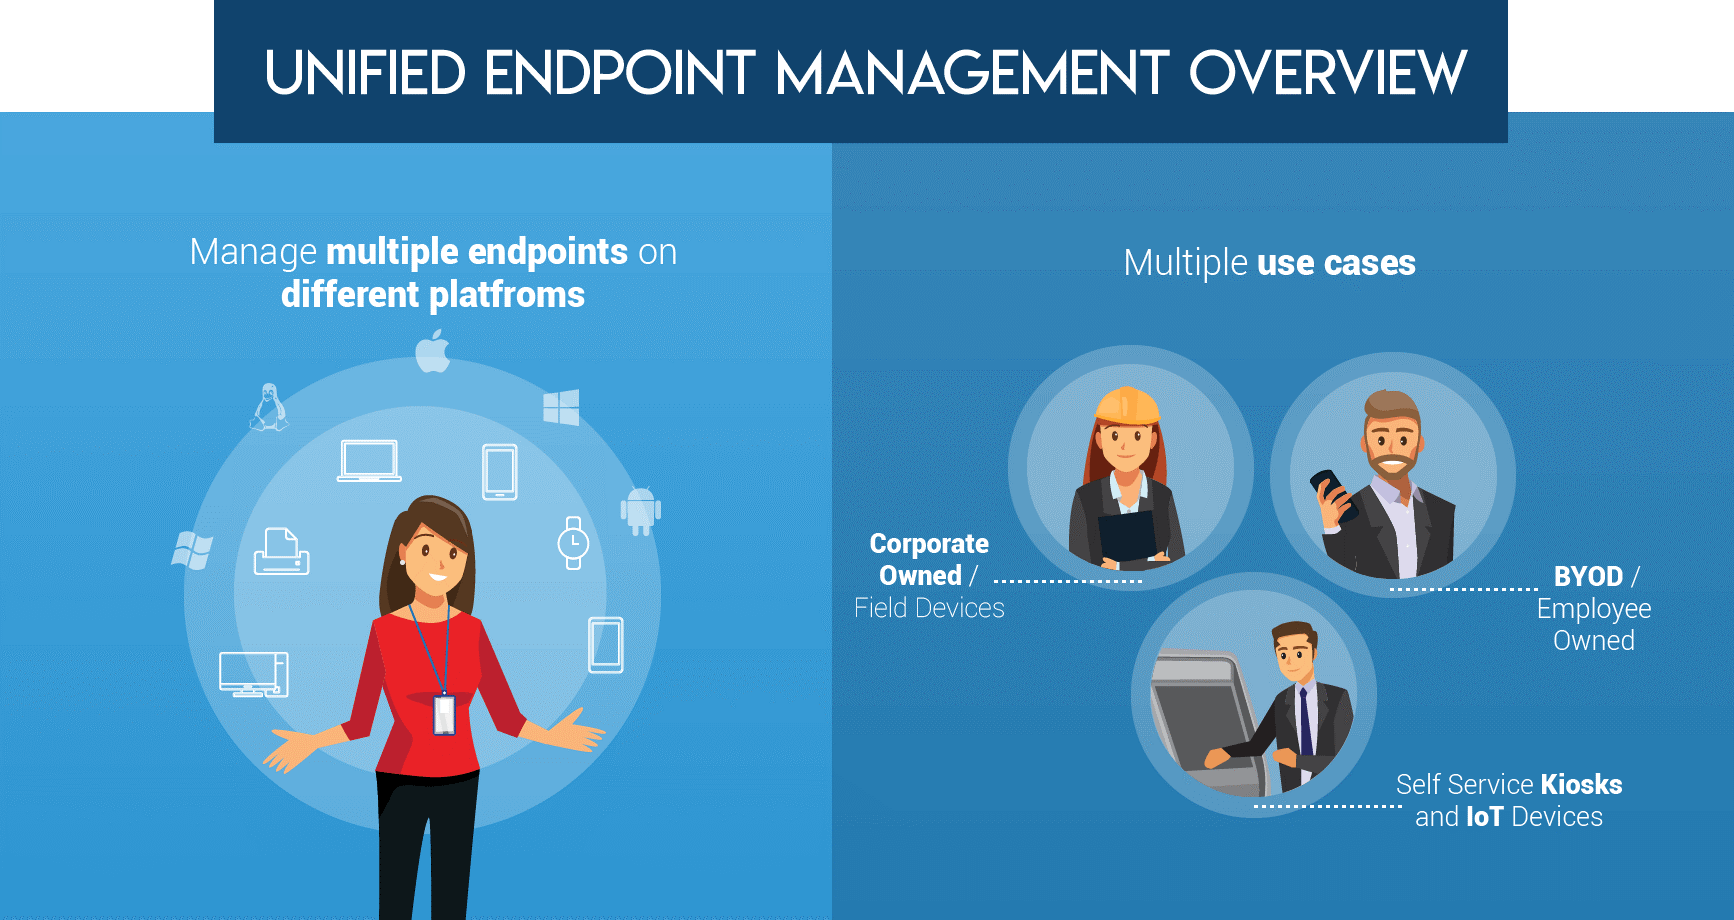 Unified Endpoint Management Overview